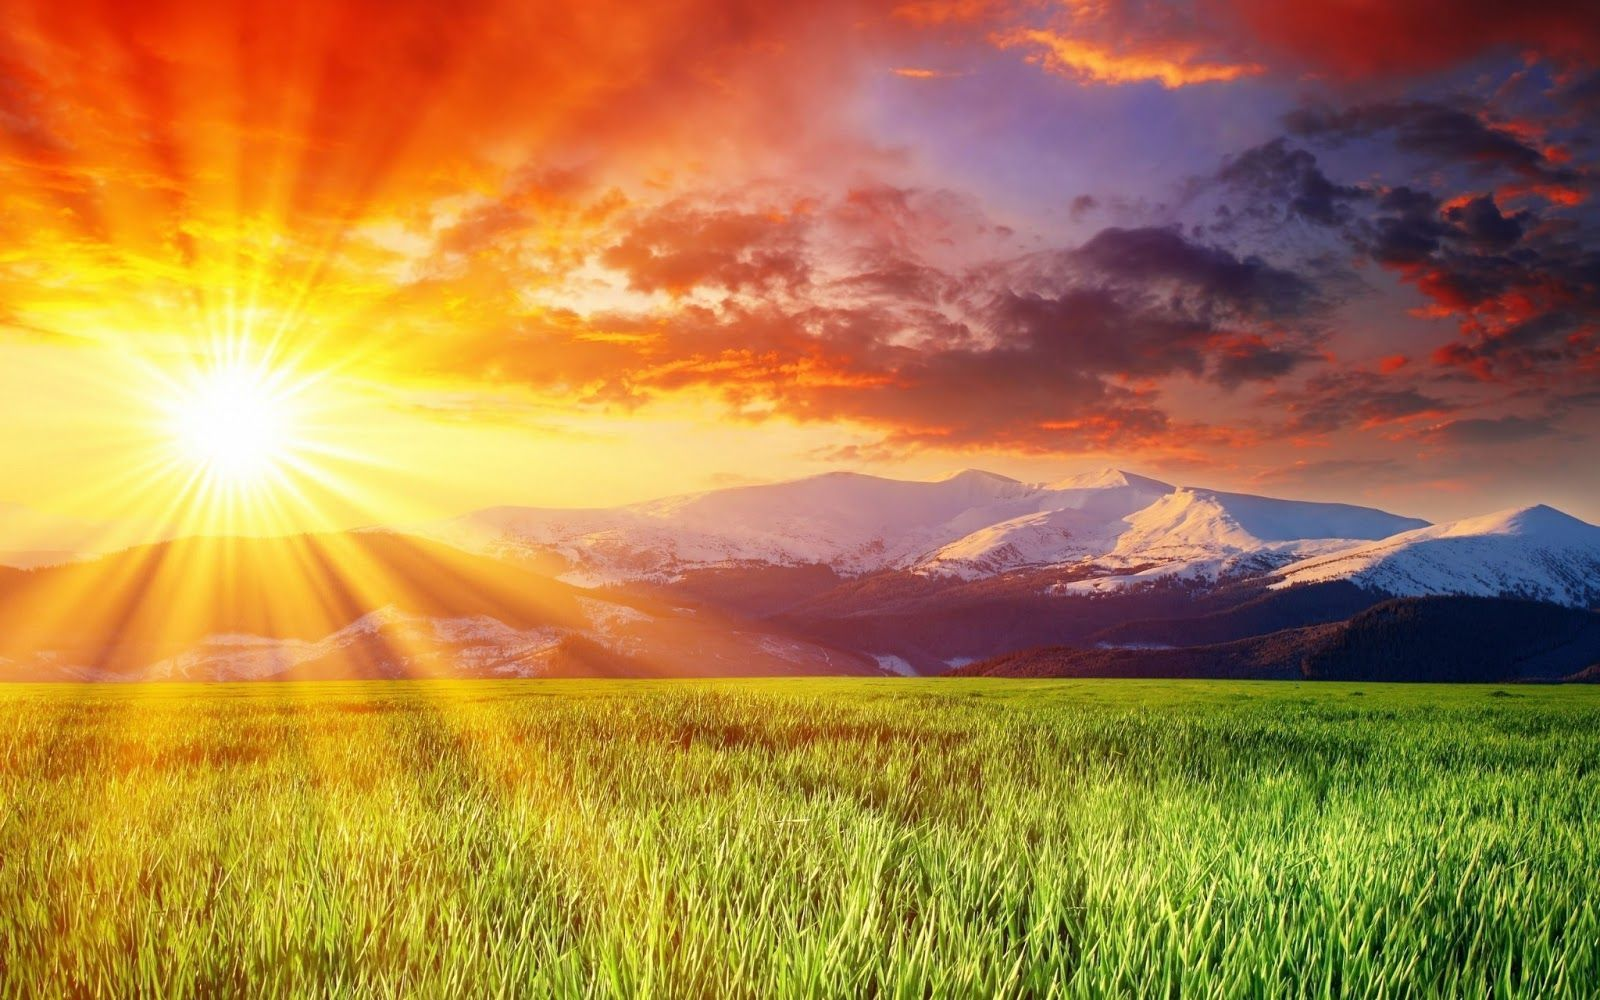 Belle Nature Hd 1080p Wallpapers Hd Wallpapery Sunrise Wallpaper Sunset Wallpaper Beautiful Nature